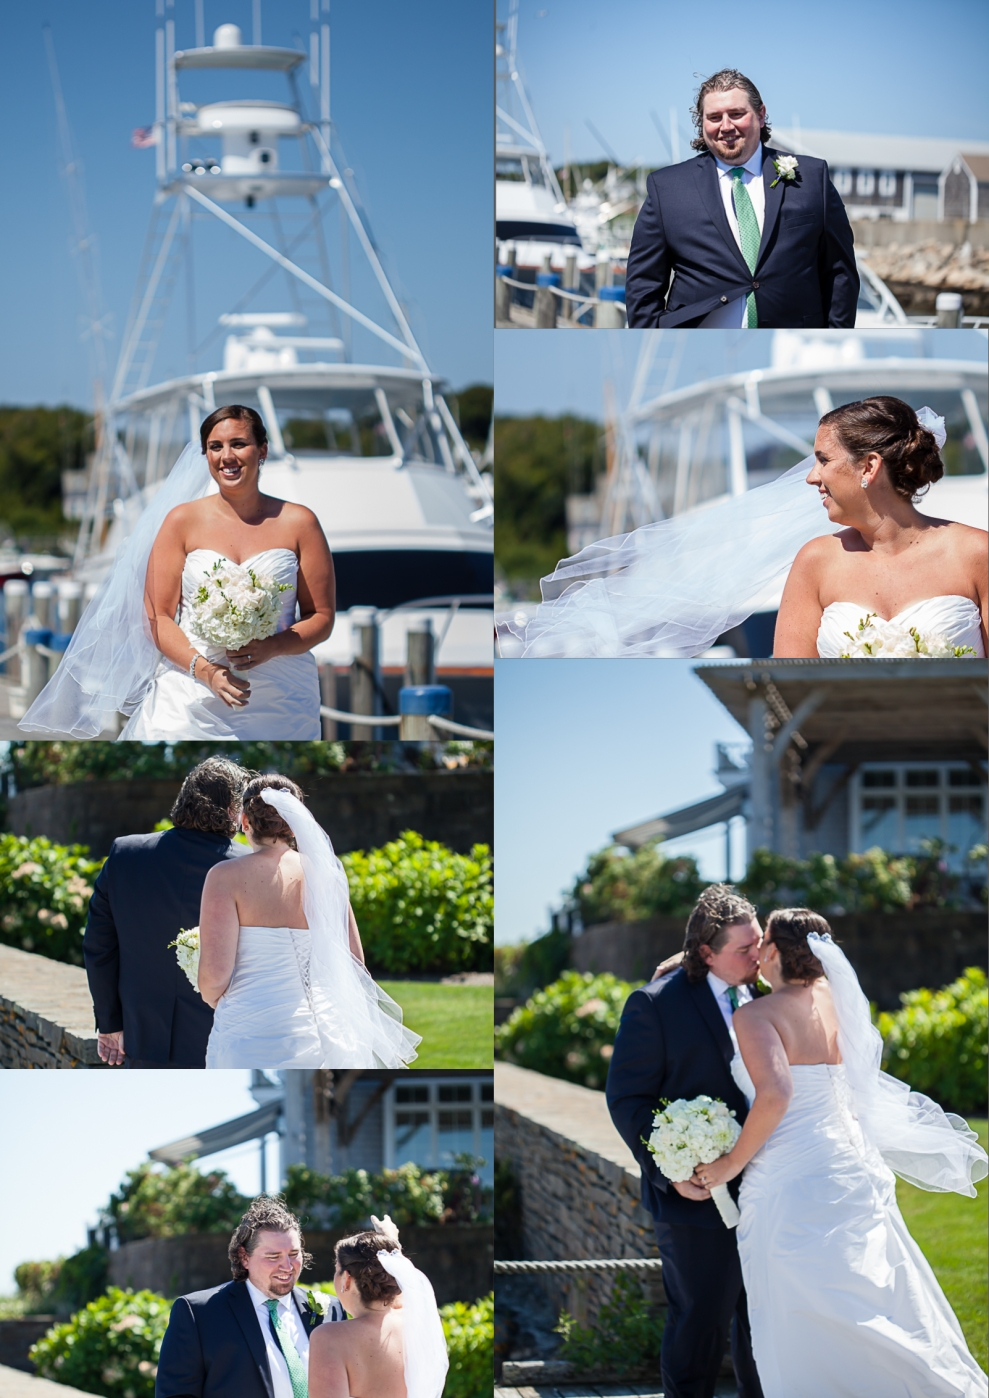 lisa-elizabeth-images-cape-cod-wedding-photographer-11